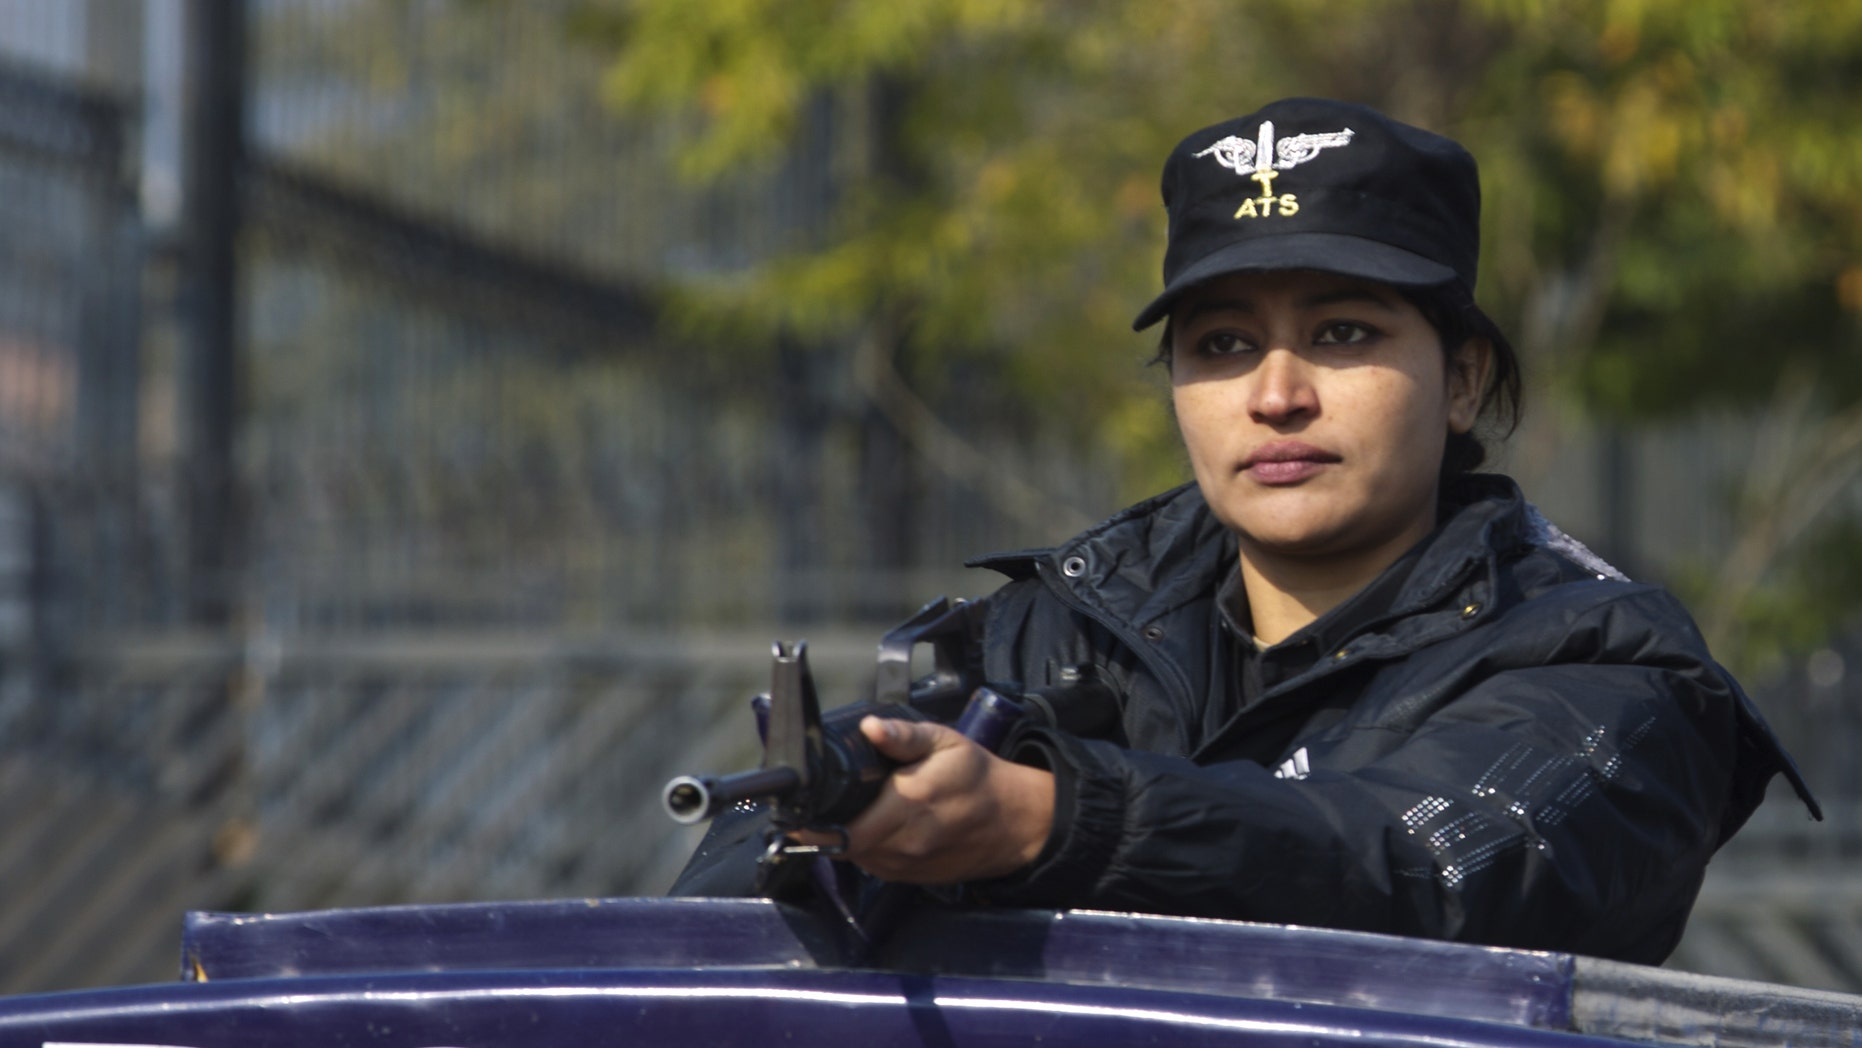 A Pakistani female police officer stands alert outside a court set up for the trial of Pakistan's former president and military ruler Pervez Musharraf in Islamabad, Pakistan, Wednesday, Jan. 1, 2014. Musharraf failed to appear in court Wednesday for the second hearing in his high-profile treason case after authorities said they found an explosive device near his home. (AP Photo/B.K. Bangash)